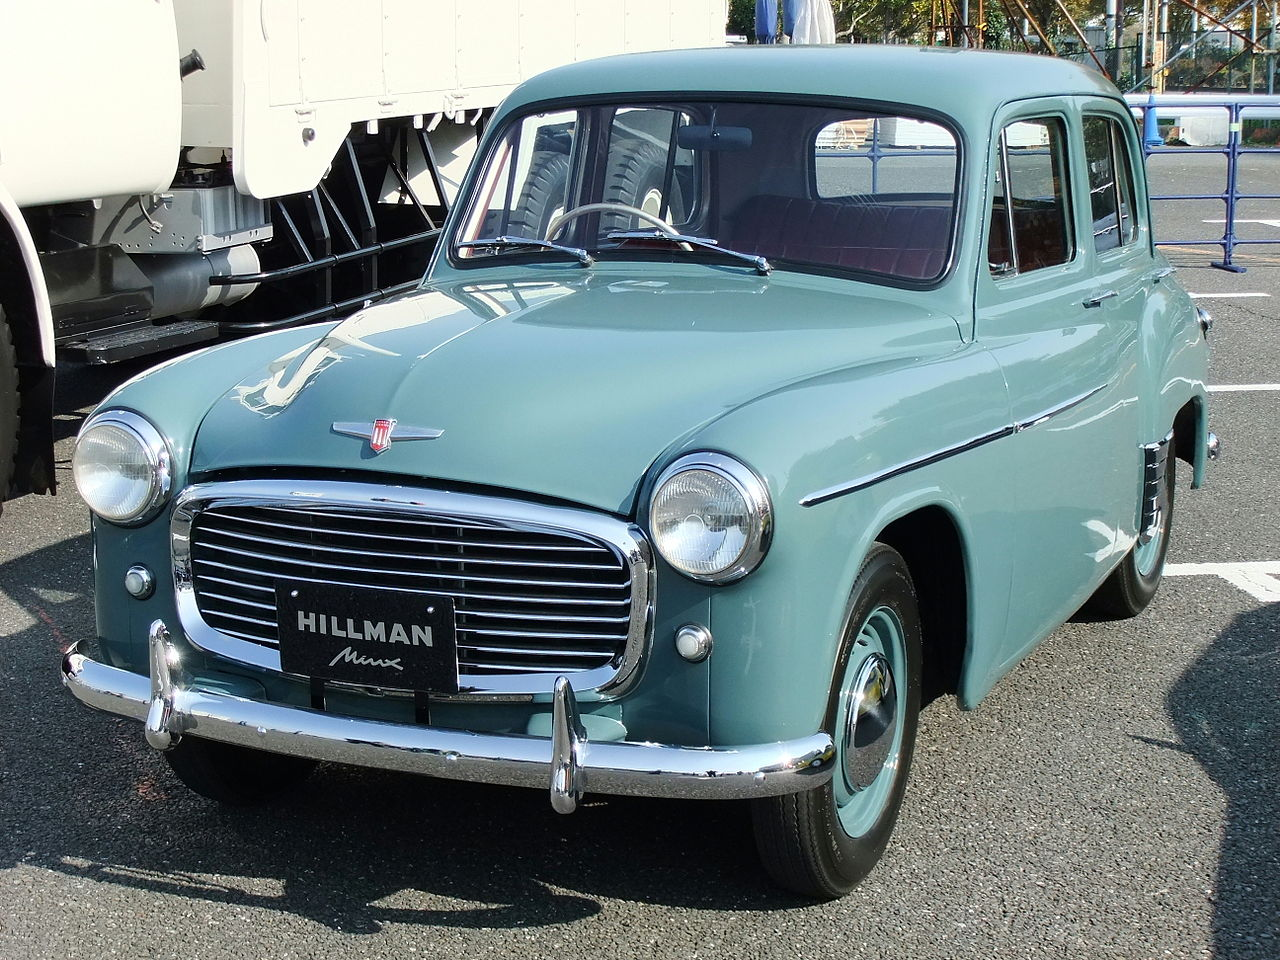 Isuzu hillman photo - 1